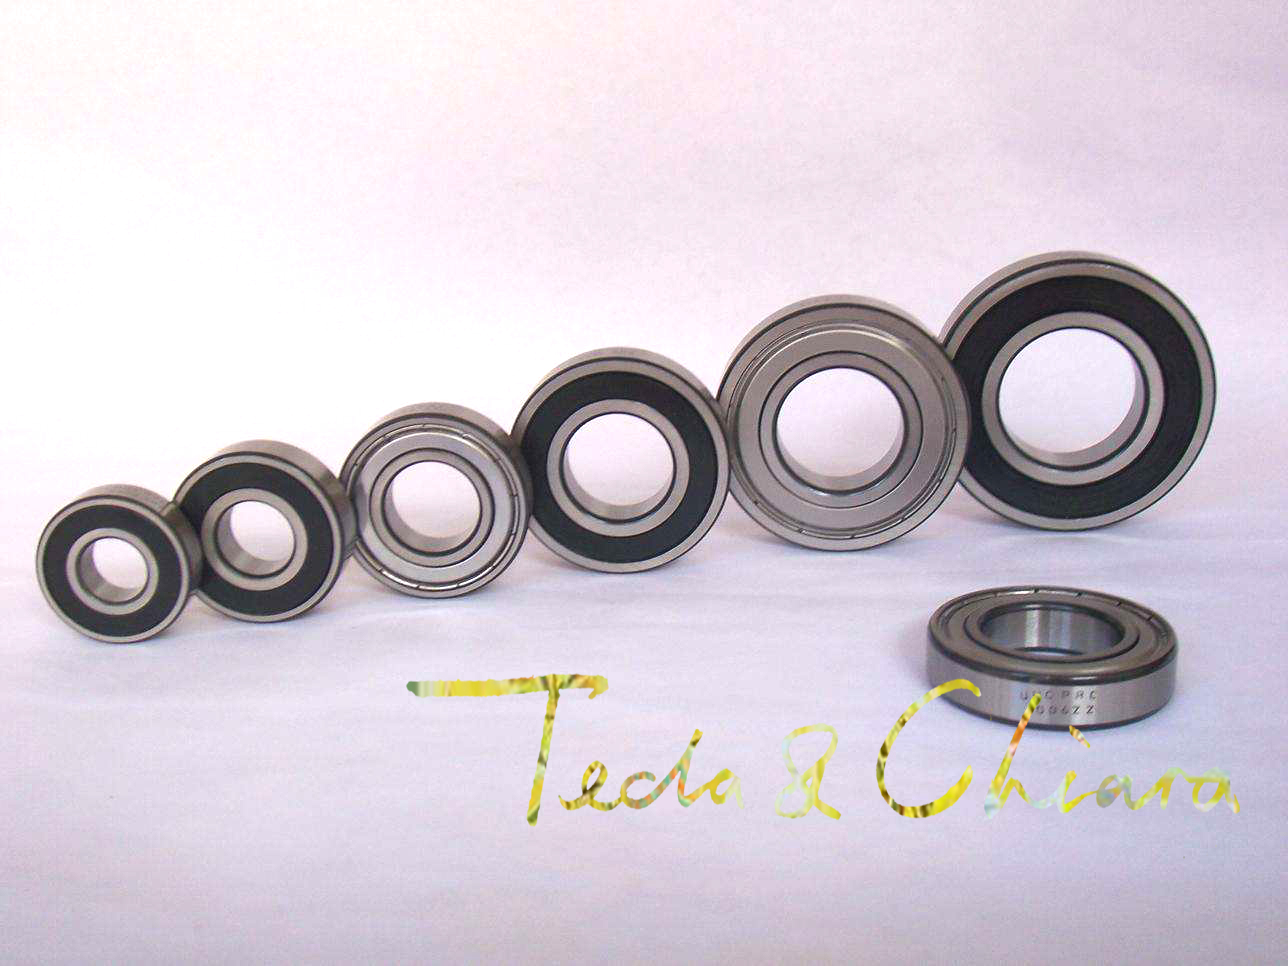 6203 6203ZZ 6203RS 6203-2Z 6203Z 6203-2RS ZZ RS RZ 2RZ Deep Groove Ball Bearings 17 x 40 x 12mm High Quality high quality non standard special bearings 6203x2 6203a 6203 42 2rs 17 42 12 mm